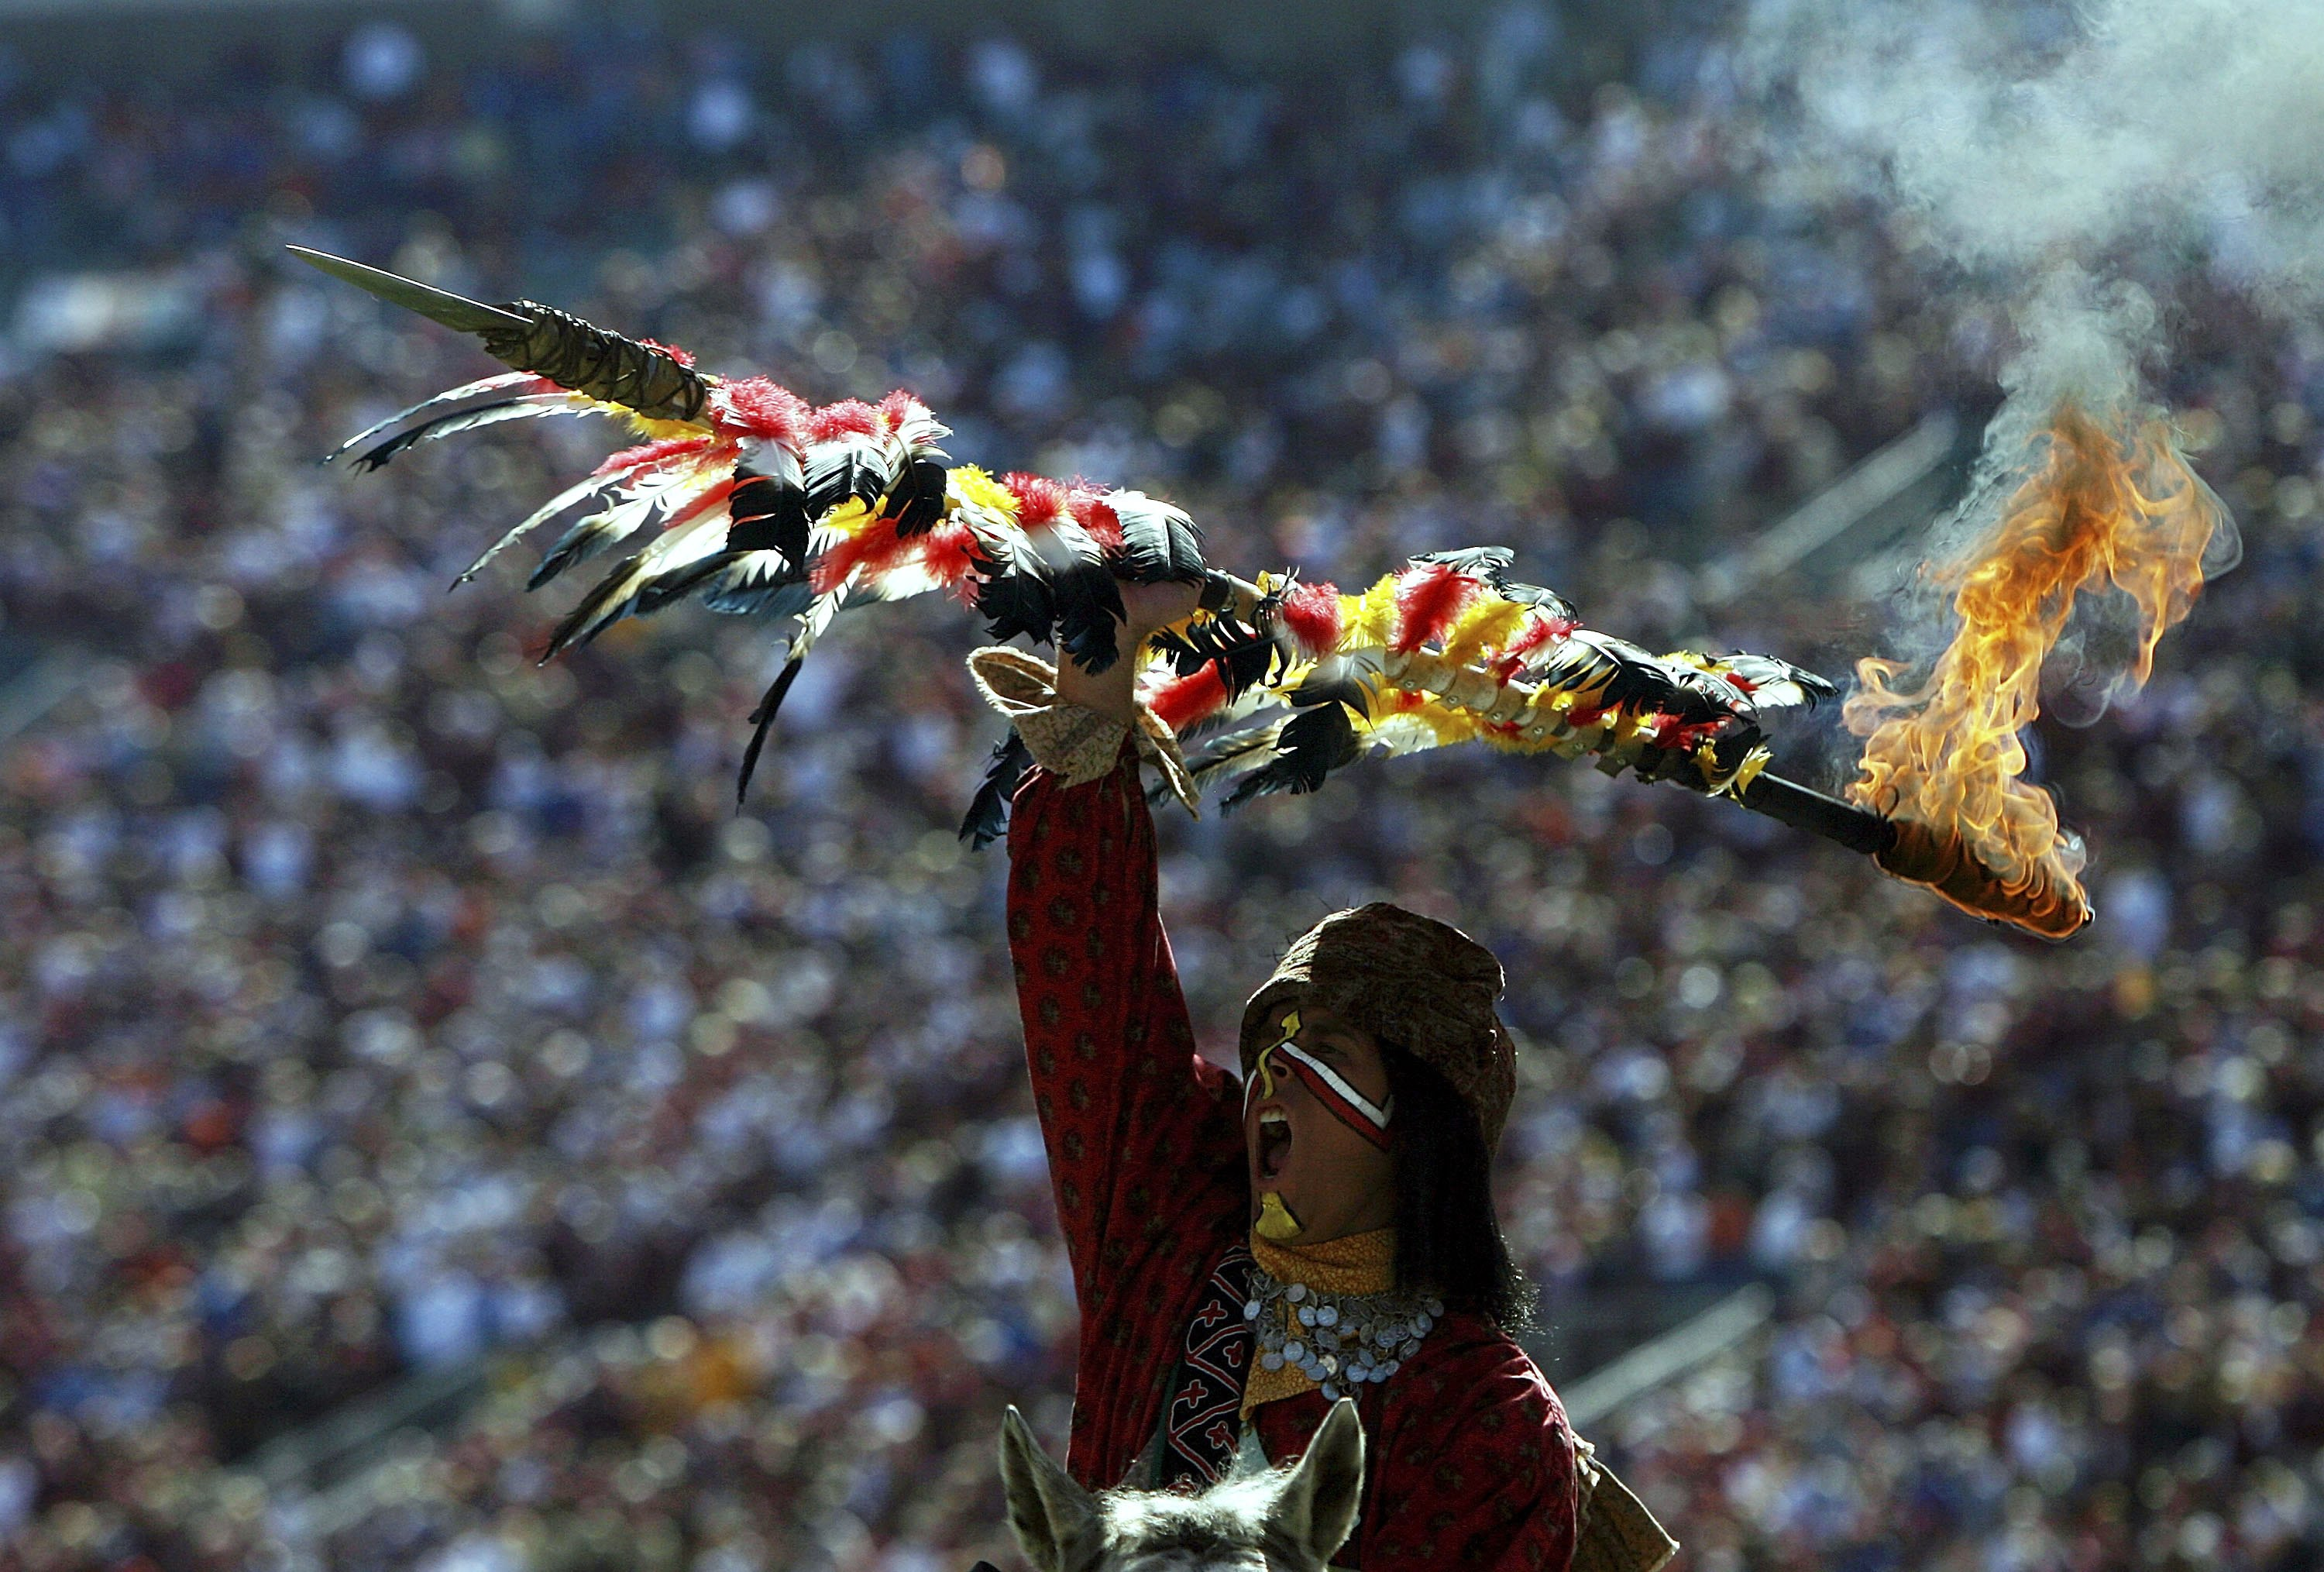 TALLAHASSEE, FL - NOVEMBER 25:  Chief Osceola of the Florida State Seminoles holds up a flaming spear during the pre-game ceremony before taking on the Florida Gators at Doak Campbell Stadium November 25, 2006 in Tallahassee, Florida. Florida defeated Flo